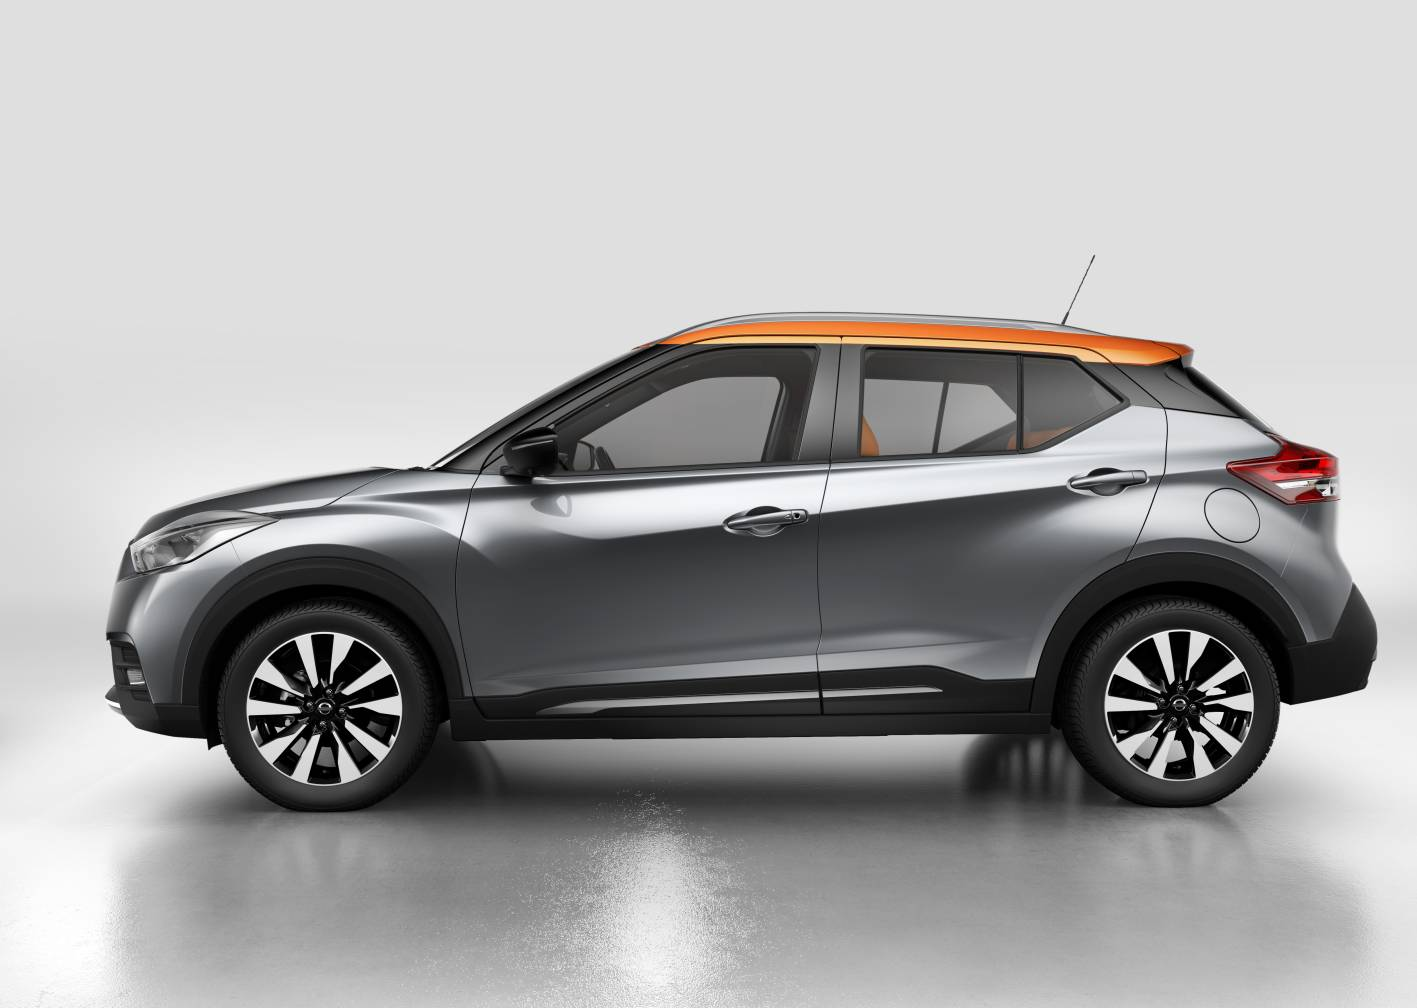 nissan news nissan kicks compact crossover goes into production. Black Bedroom Furniture Sets. Home Design Ideas